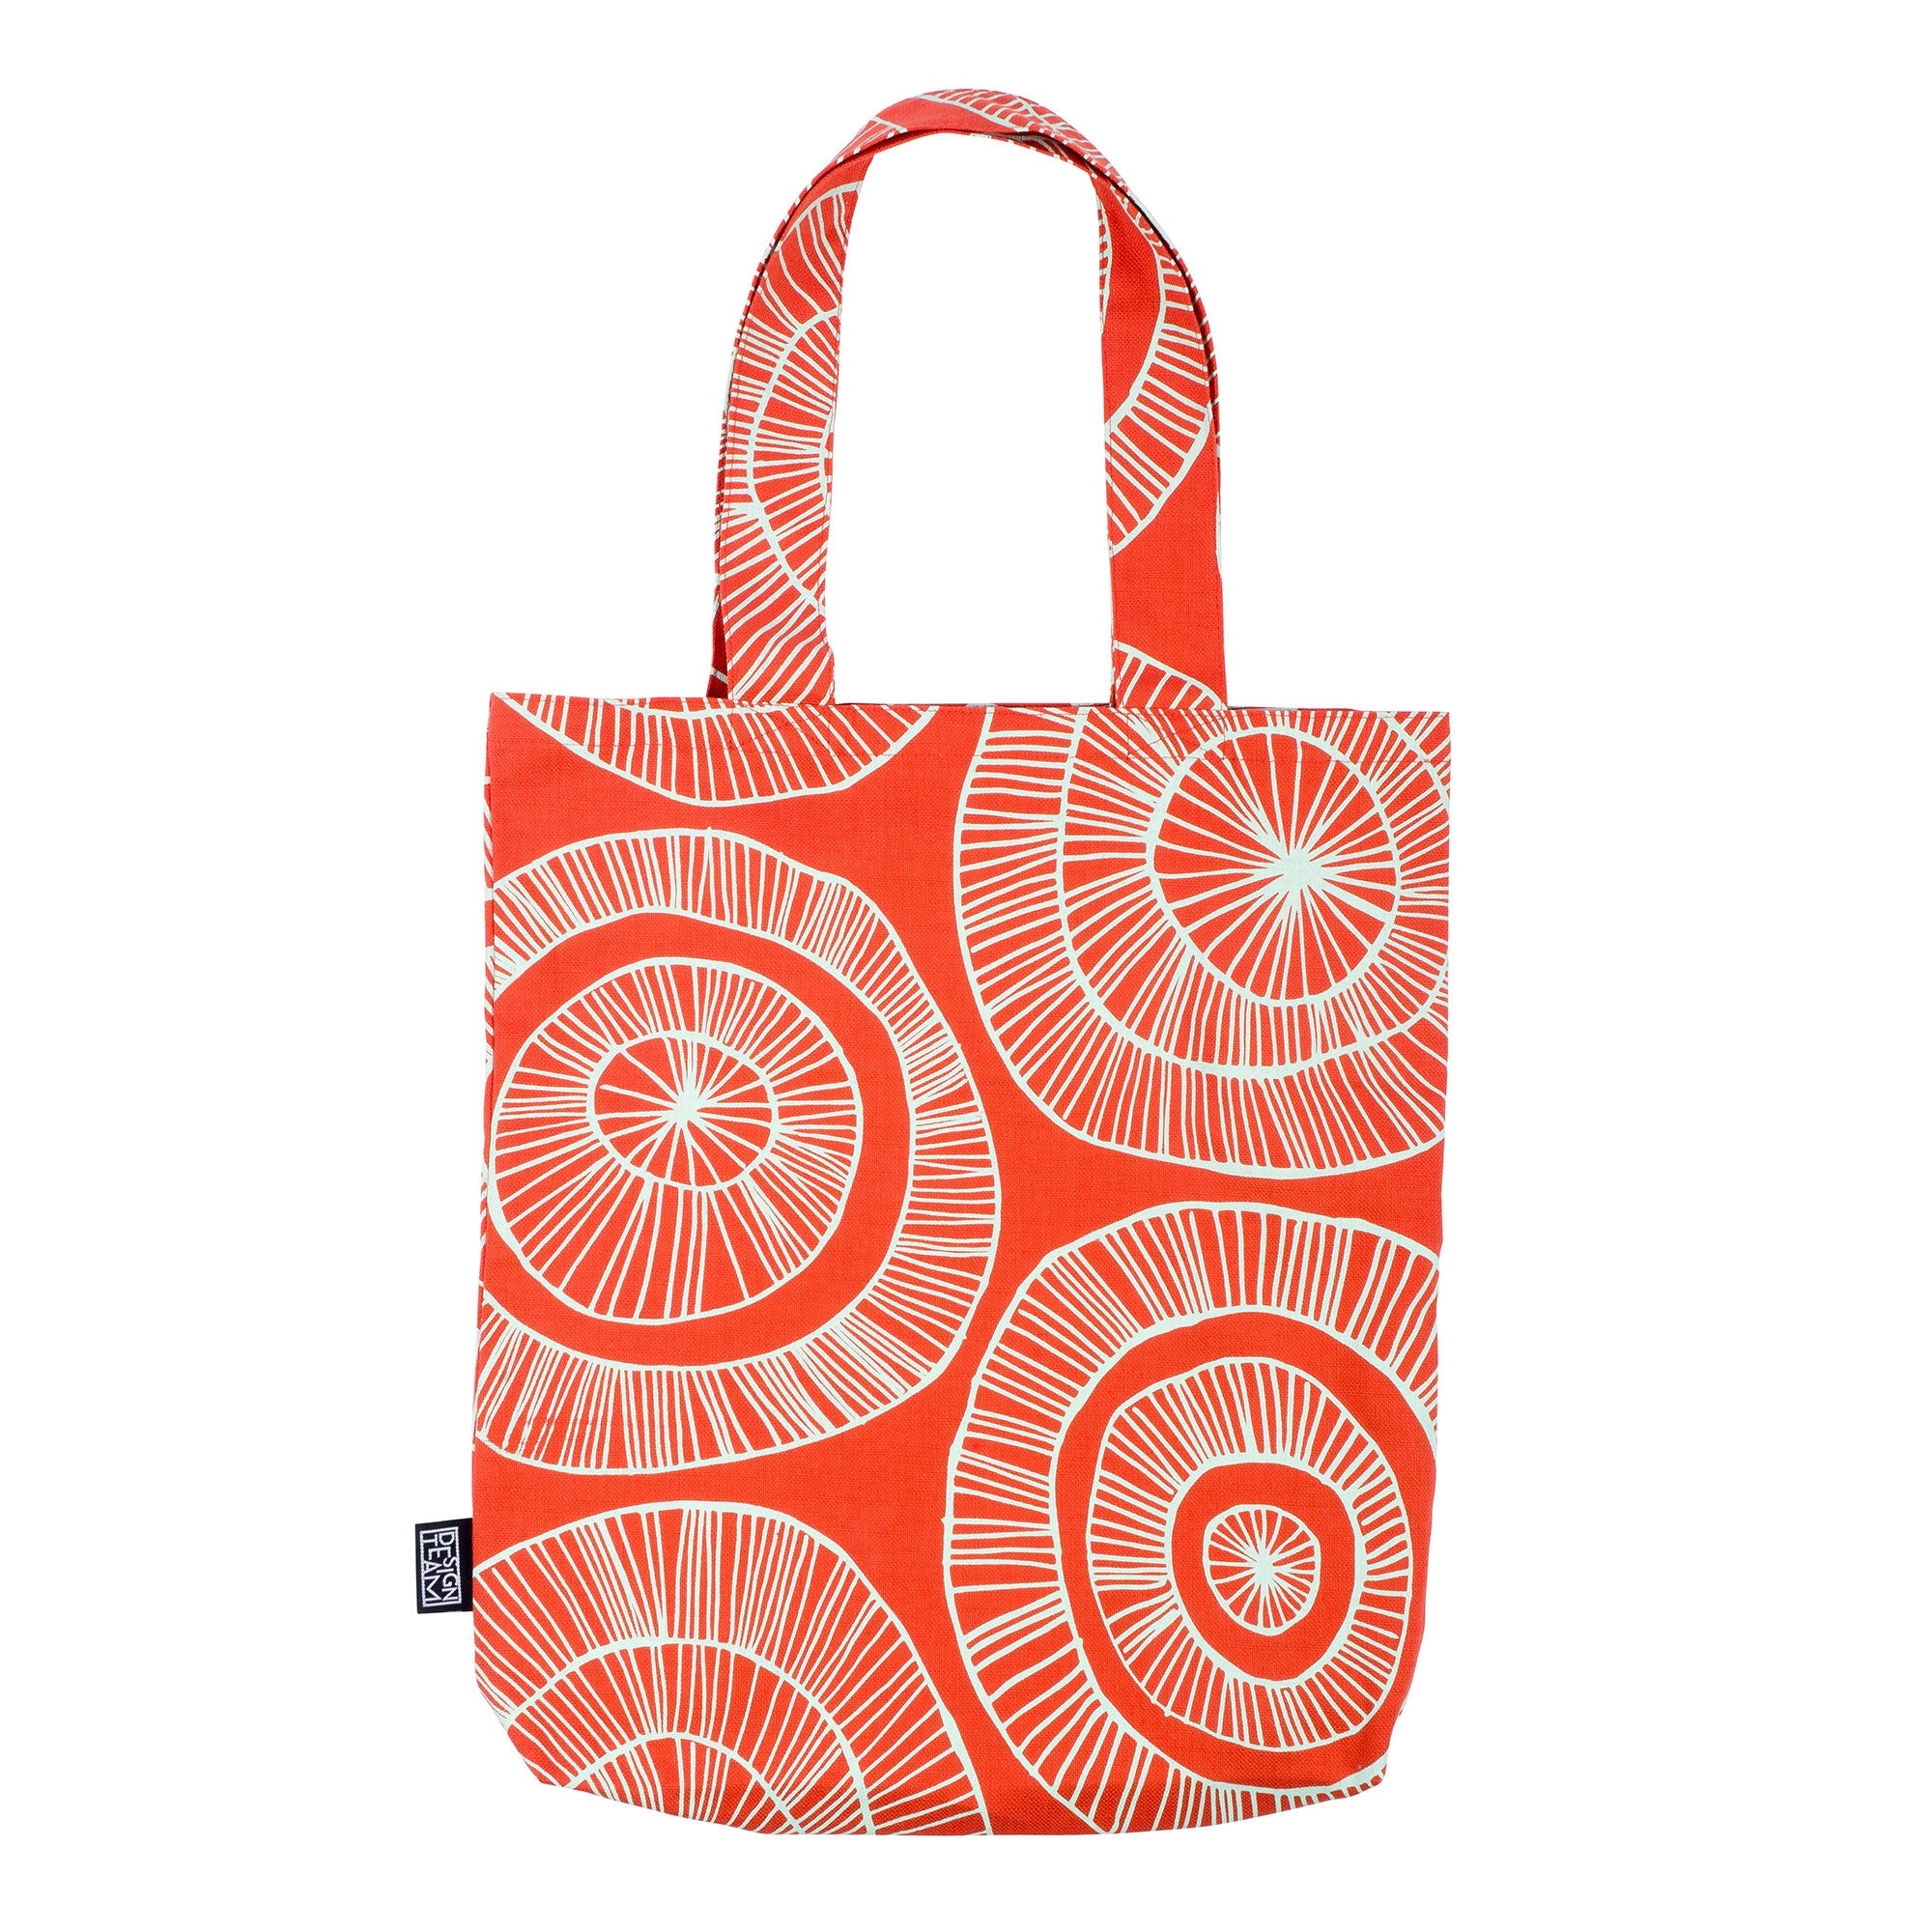 Orange basket tote bag